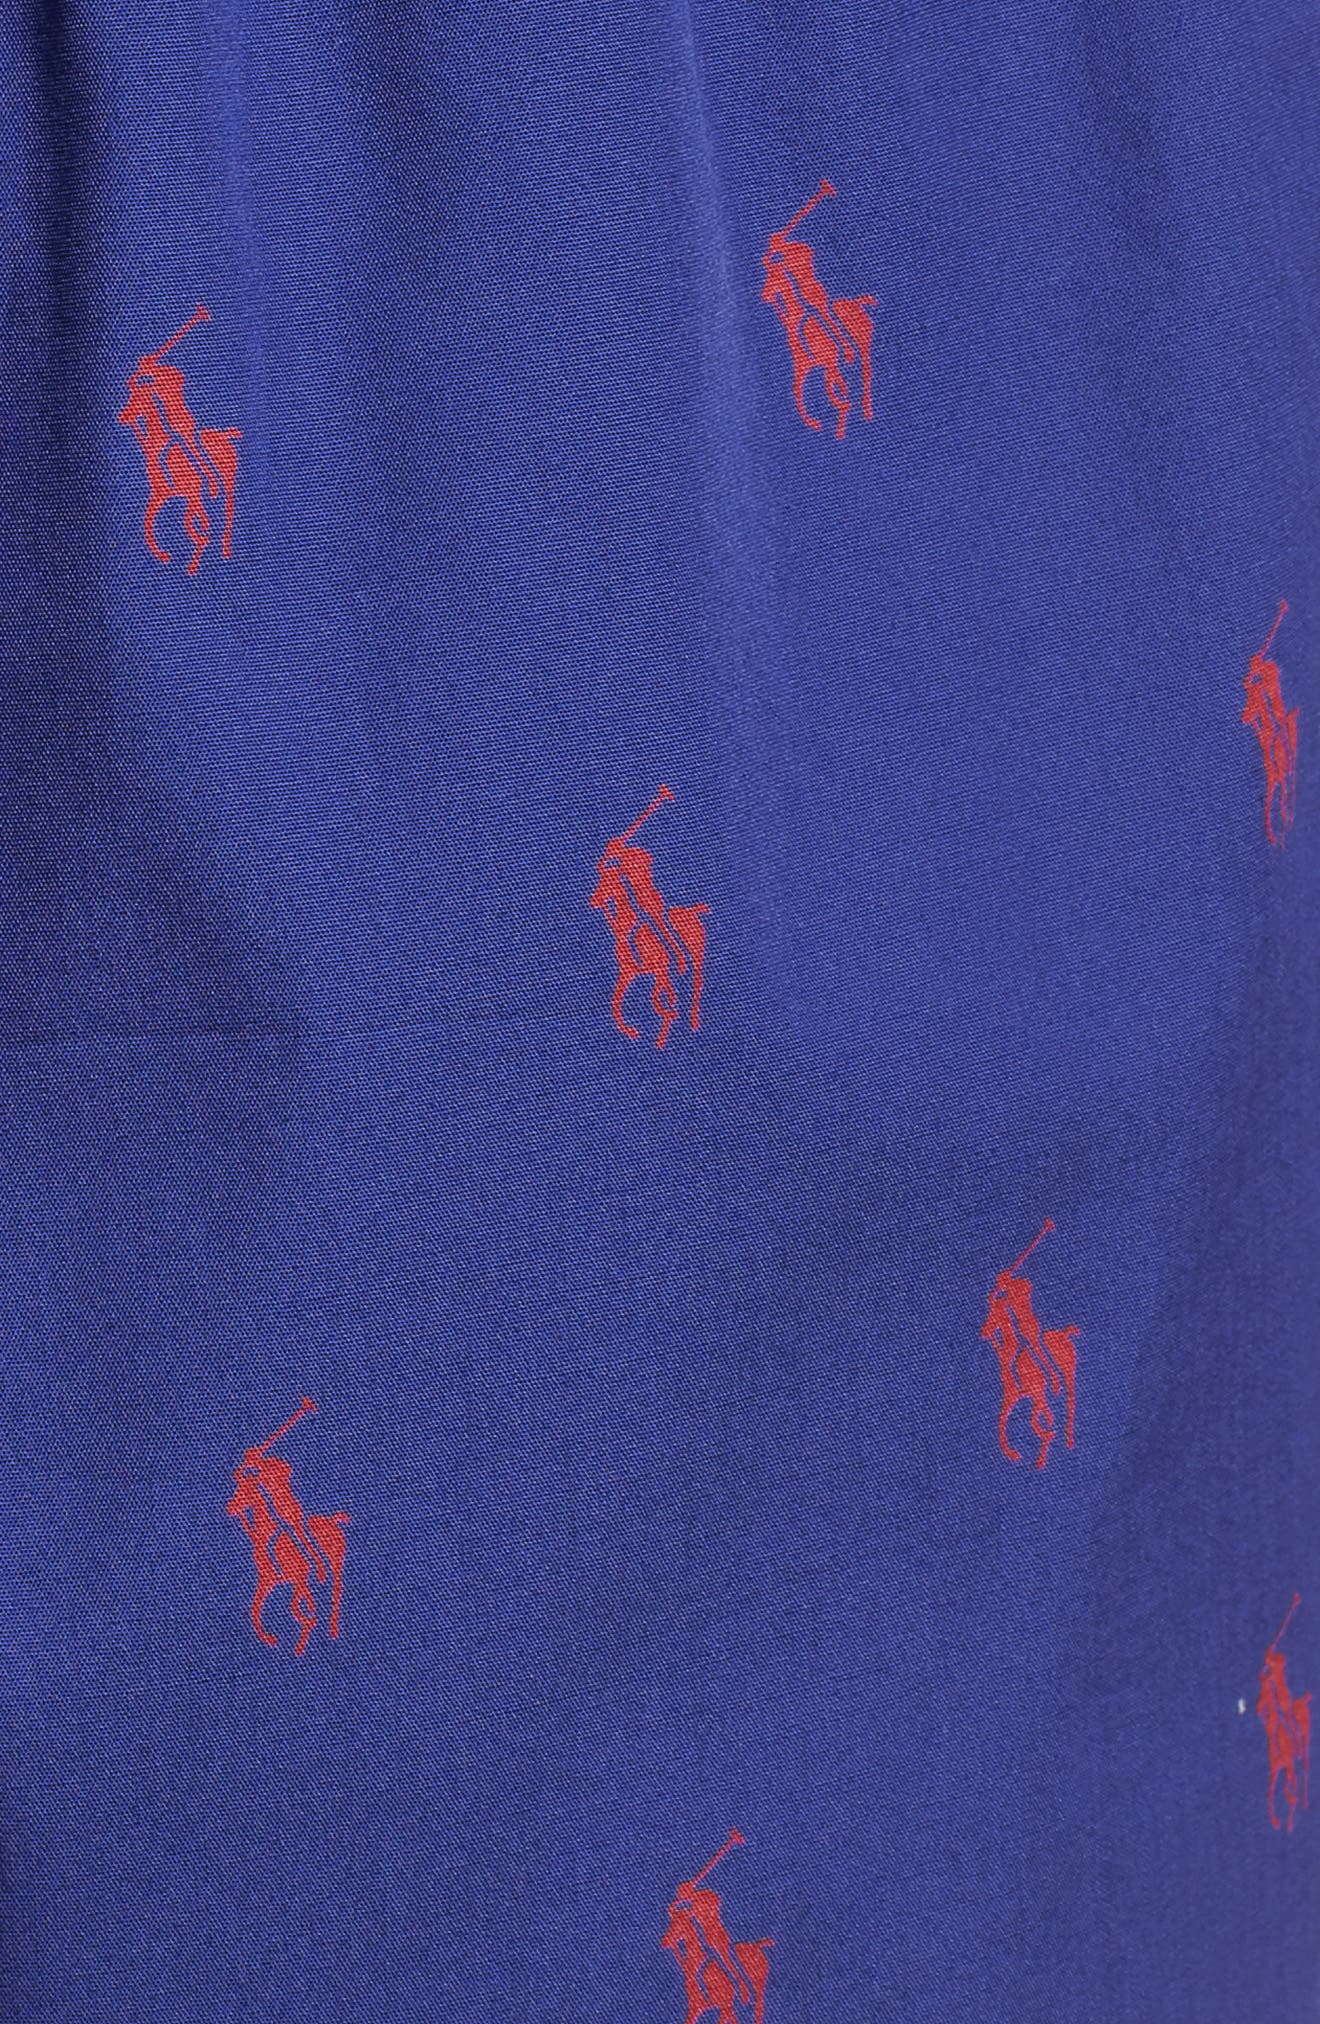 Cotton Boxers,                             Alternate thumbnail 5, color,                             Bright Navy/ Sunrise Red